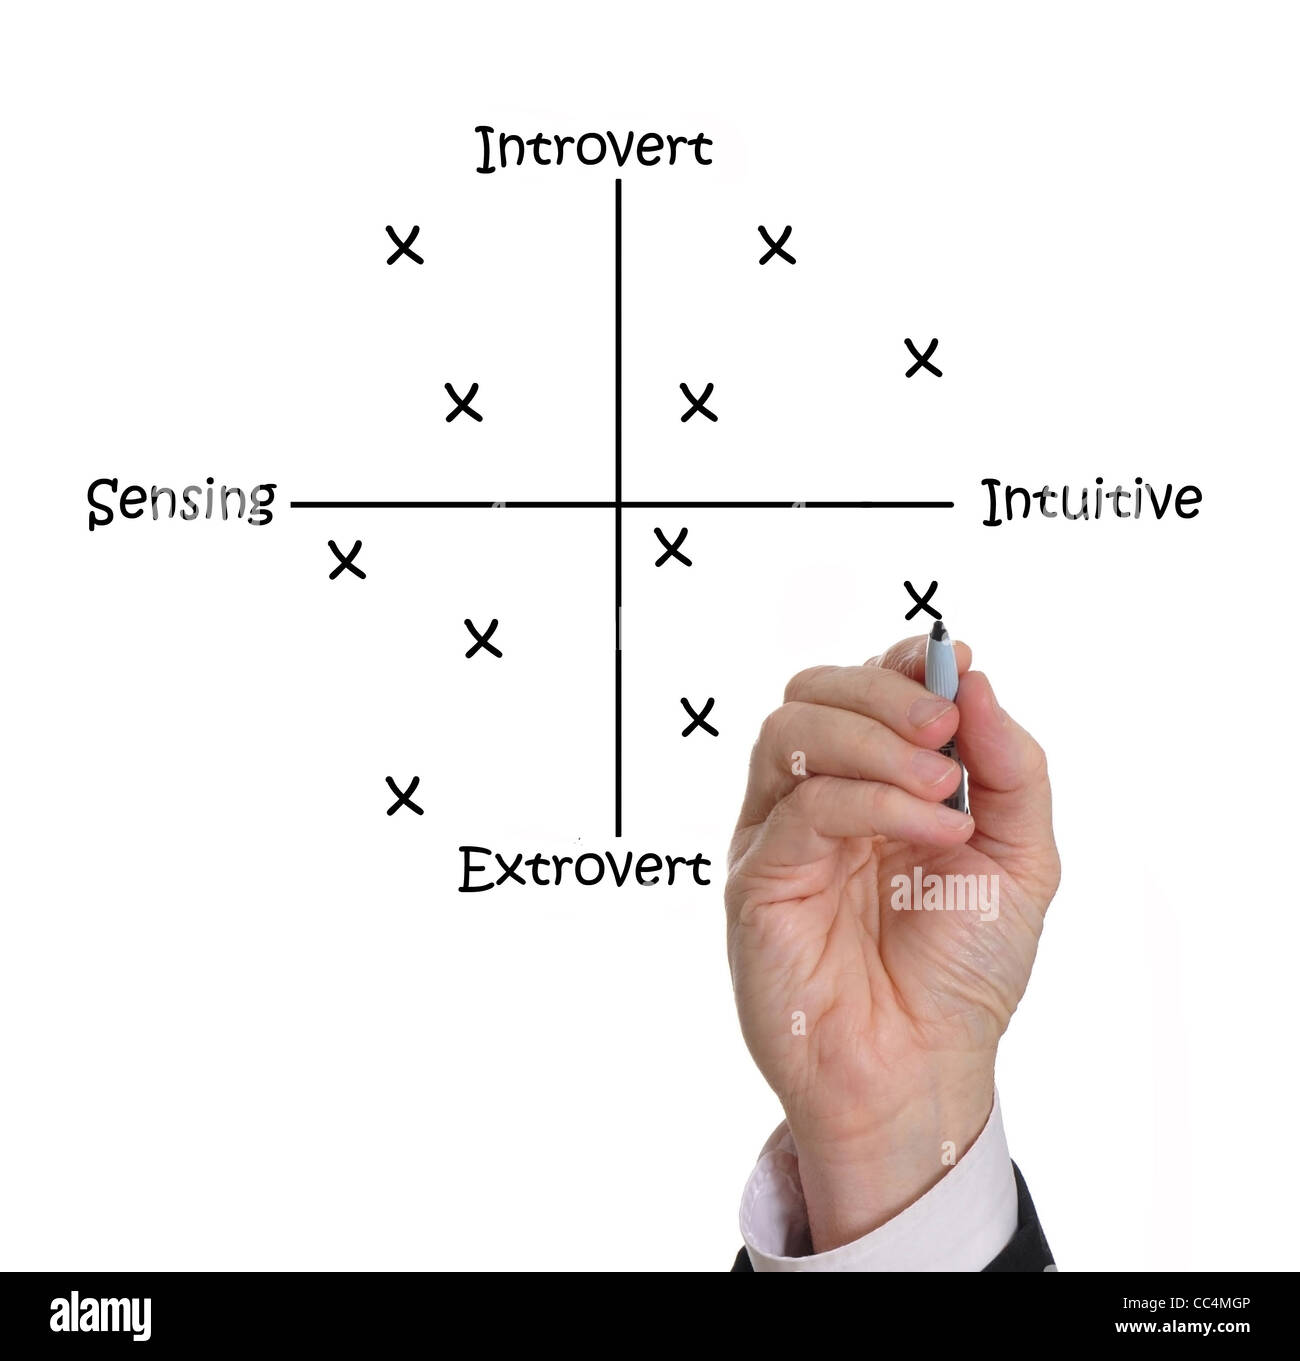 Male executive drawing results of a personality test on a whiteboard - Stock Image